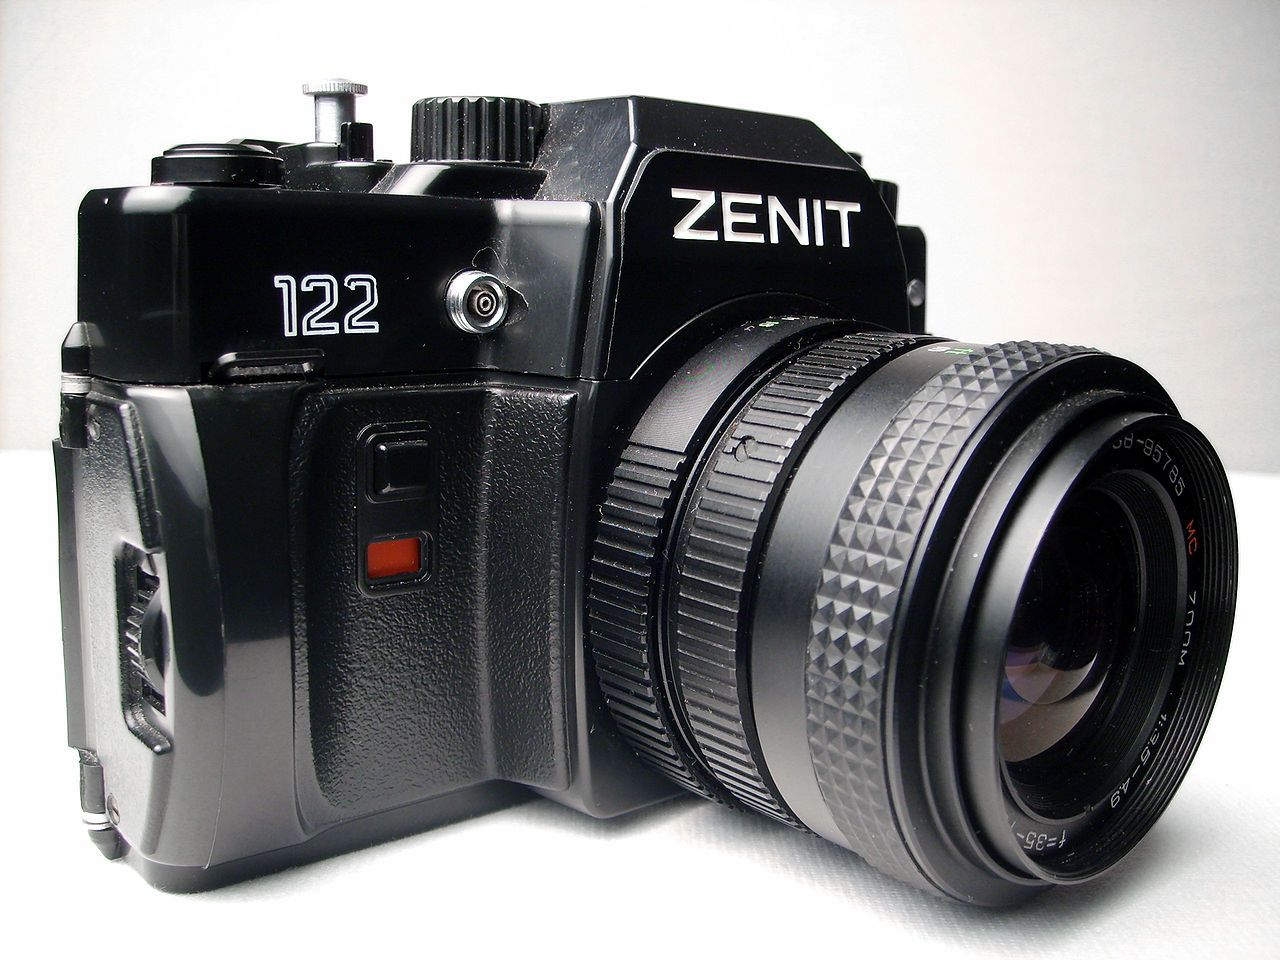 Zenit 122 camera - Zenit (camera). Bought it (new) from http://www.conrad.ch. Had this model (if I remember well...) The flash-socket has been sabotaged (it wobbled afterward!) with a screwdriver by an obviously fascistic guy who hated Russian products! (He worked for the Marlin Fotohaus) He left his job soon after! As I went back relatively short after, to complain, he was gone already! (I don't have it anymore)